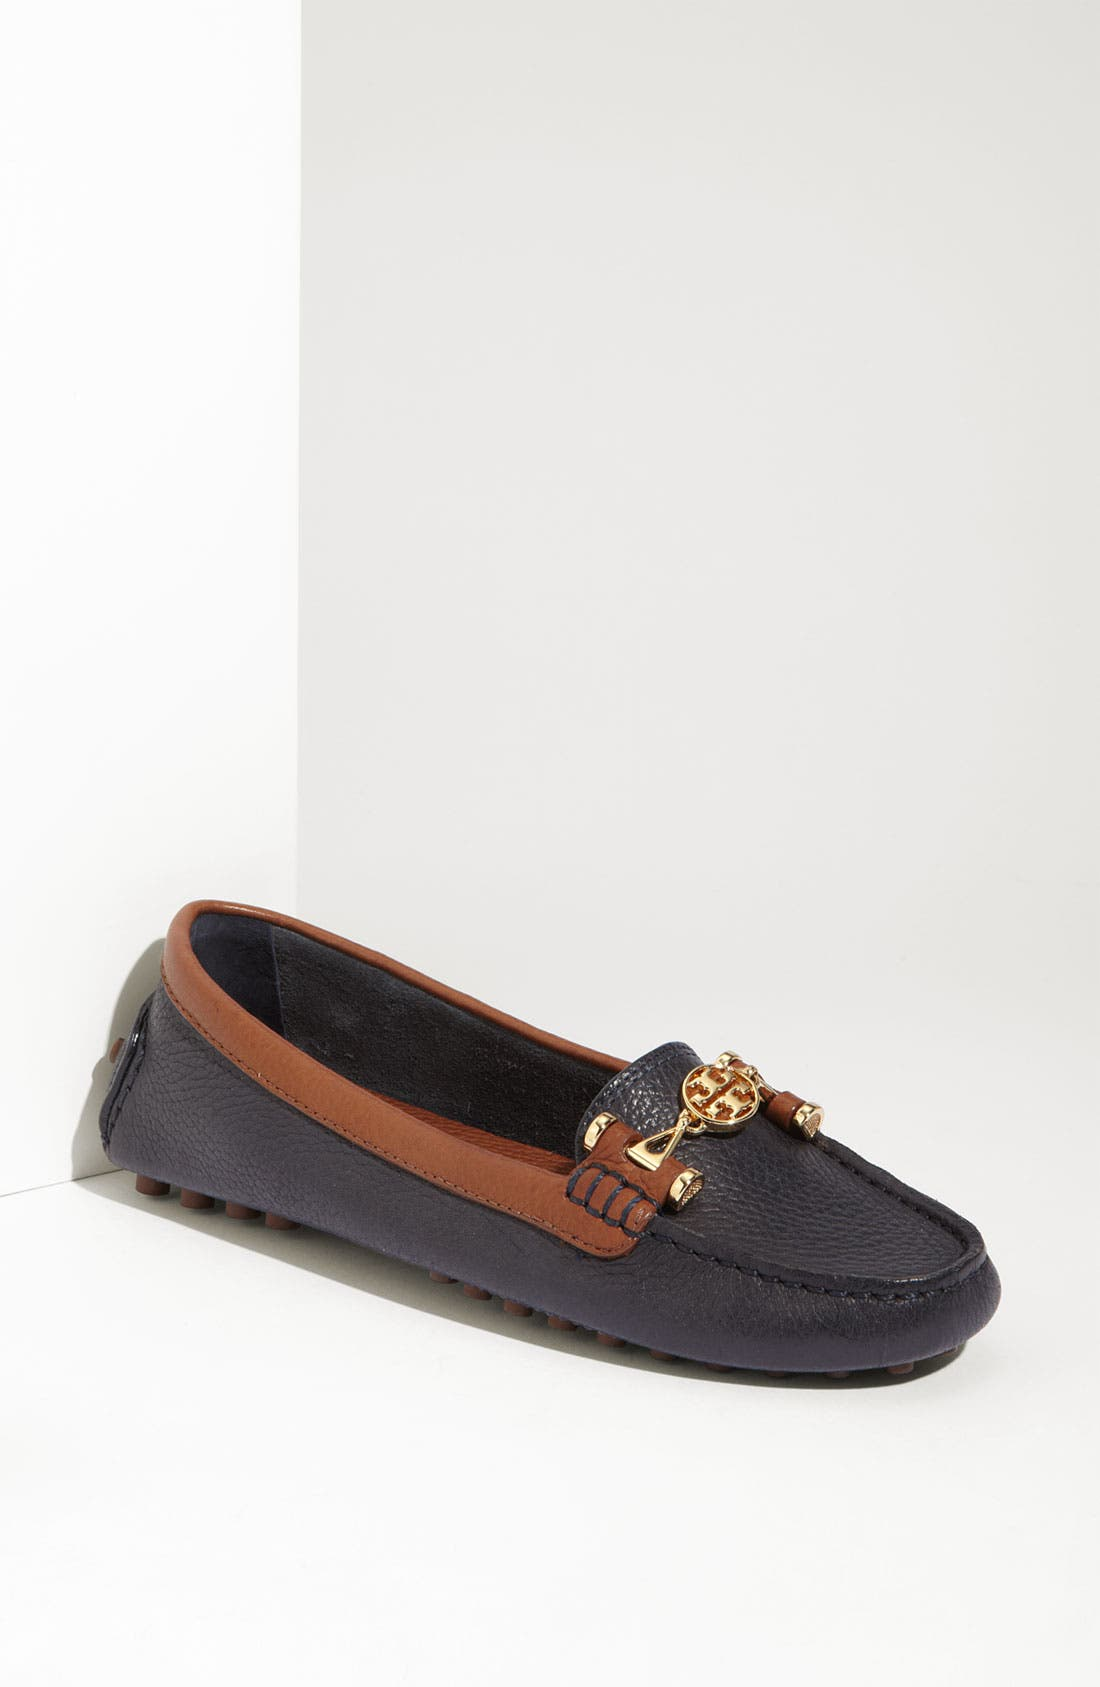 Alternate Image 1 Selected - Tory Burch 'Daria' Driving Moccasin